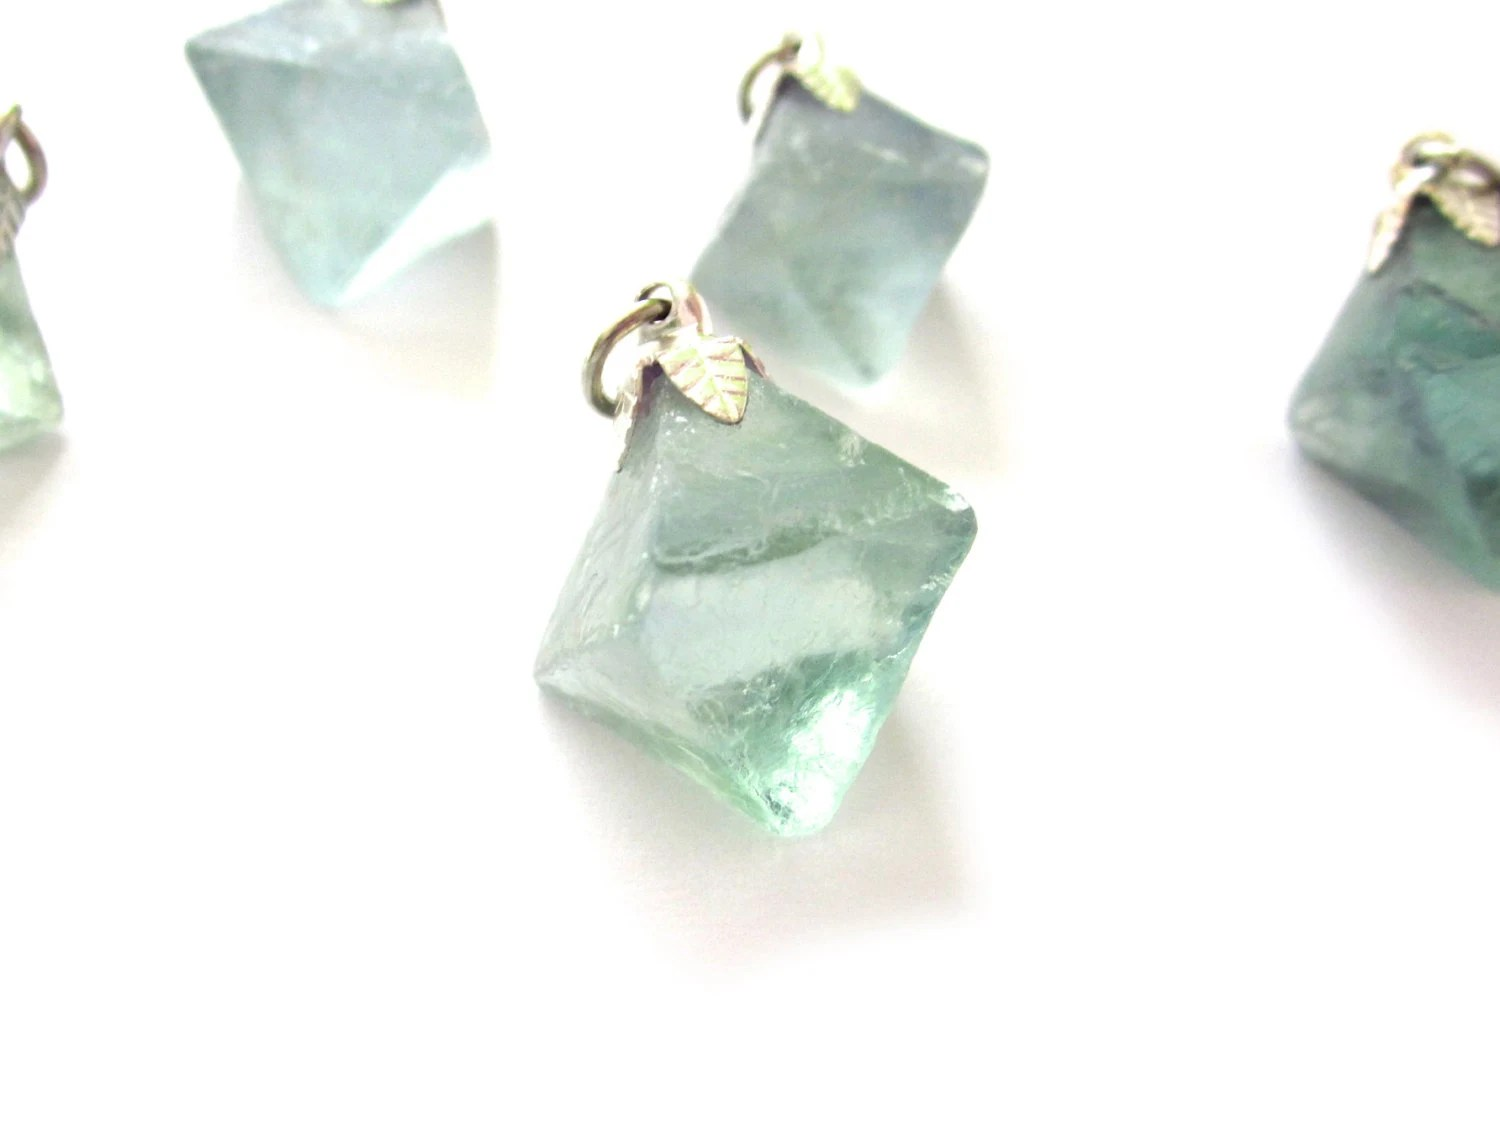 Fluorite Octahedron Pendant 1 Blue Green Raw Crystal With Cap and Bail, Silver, Pewter, Natural, Mint, Aqua (Lot No. FL08A) - instantkarmashop